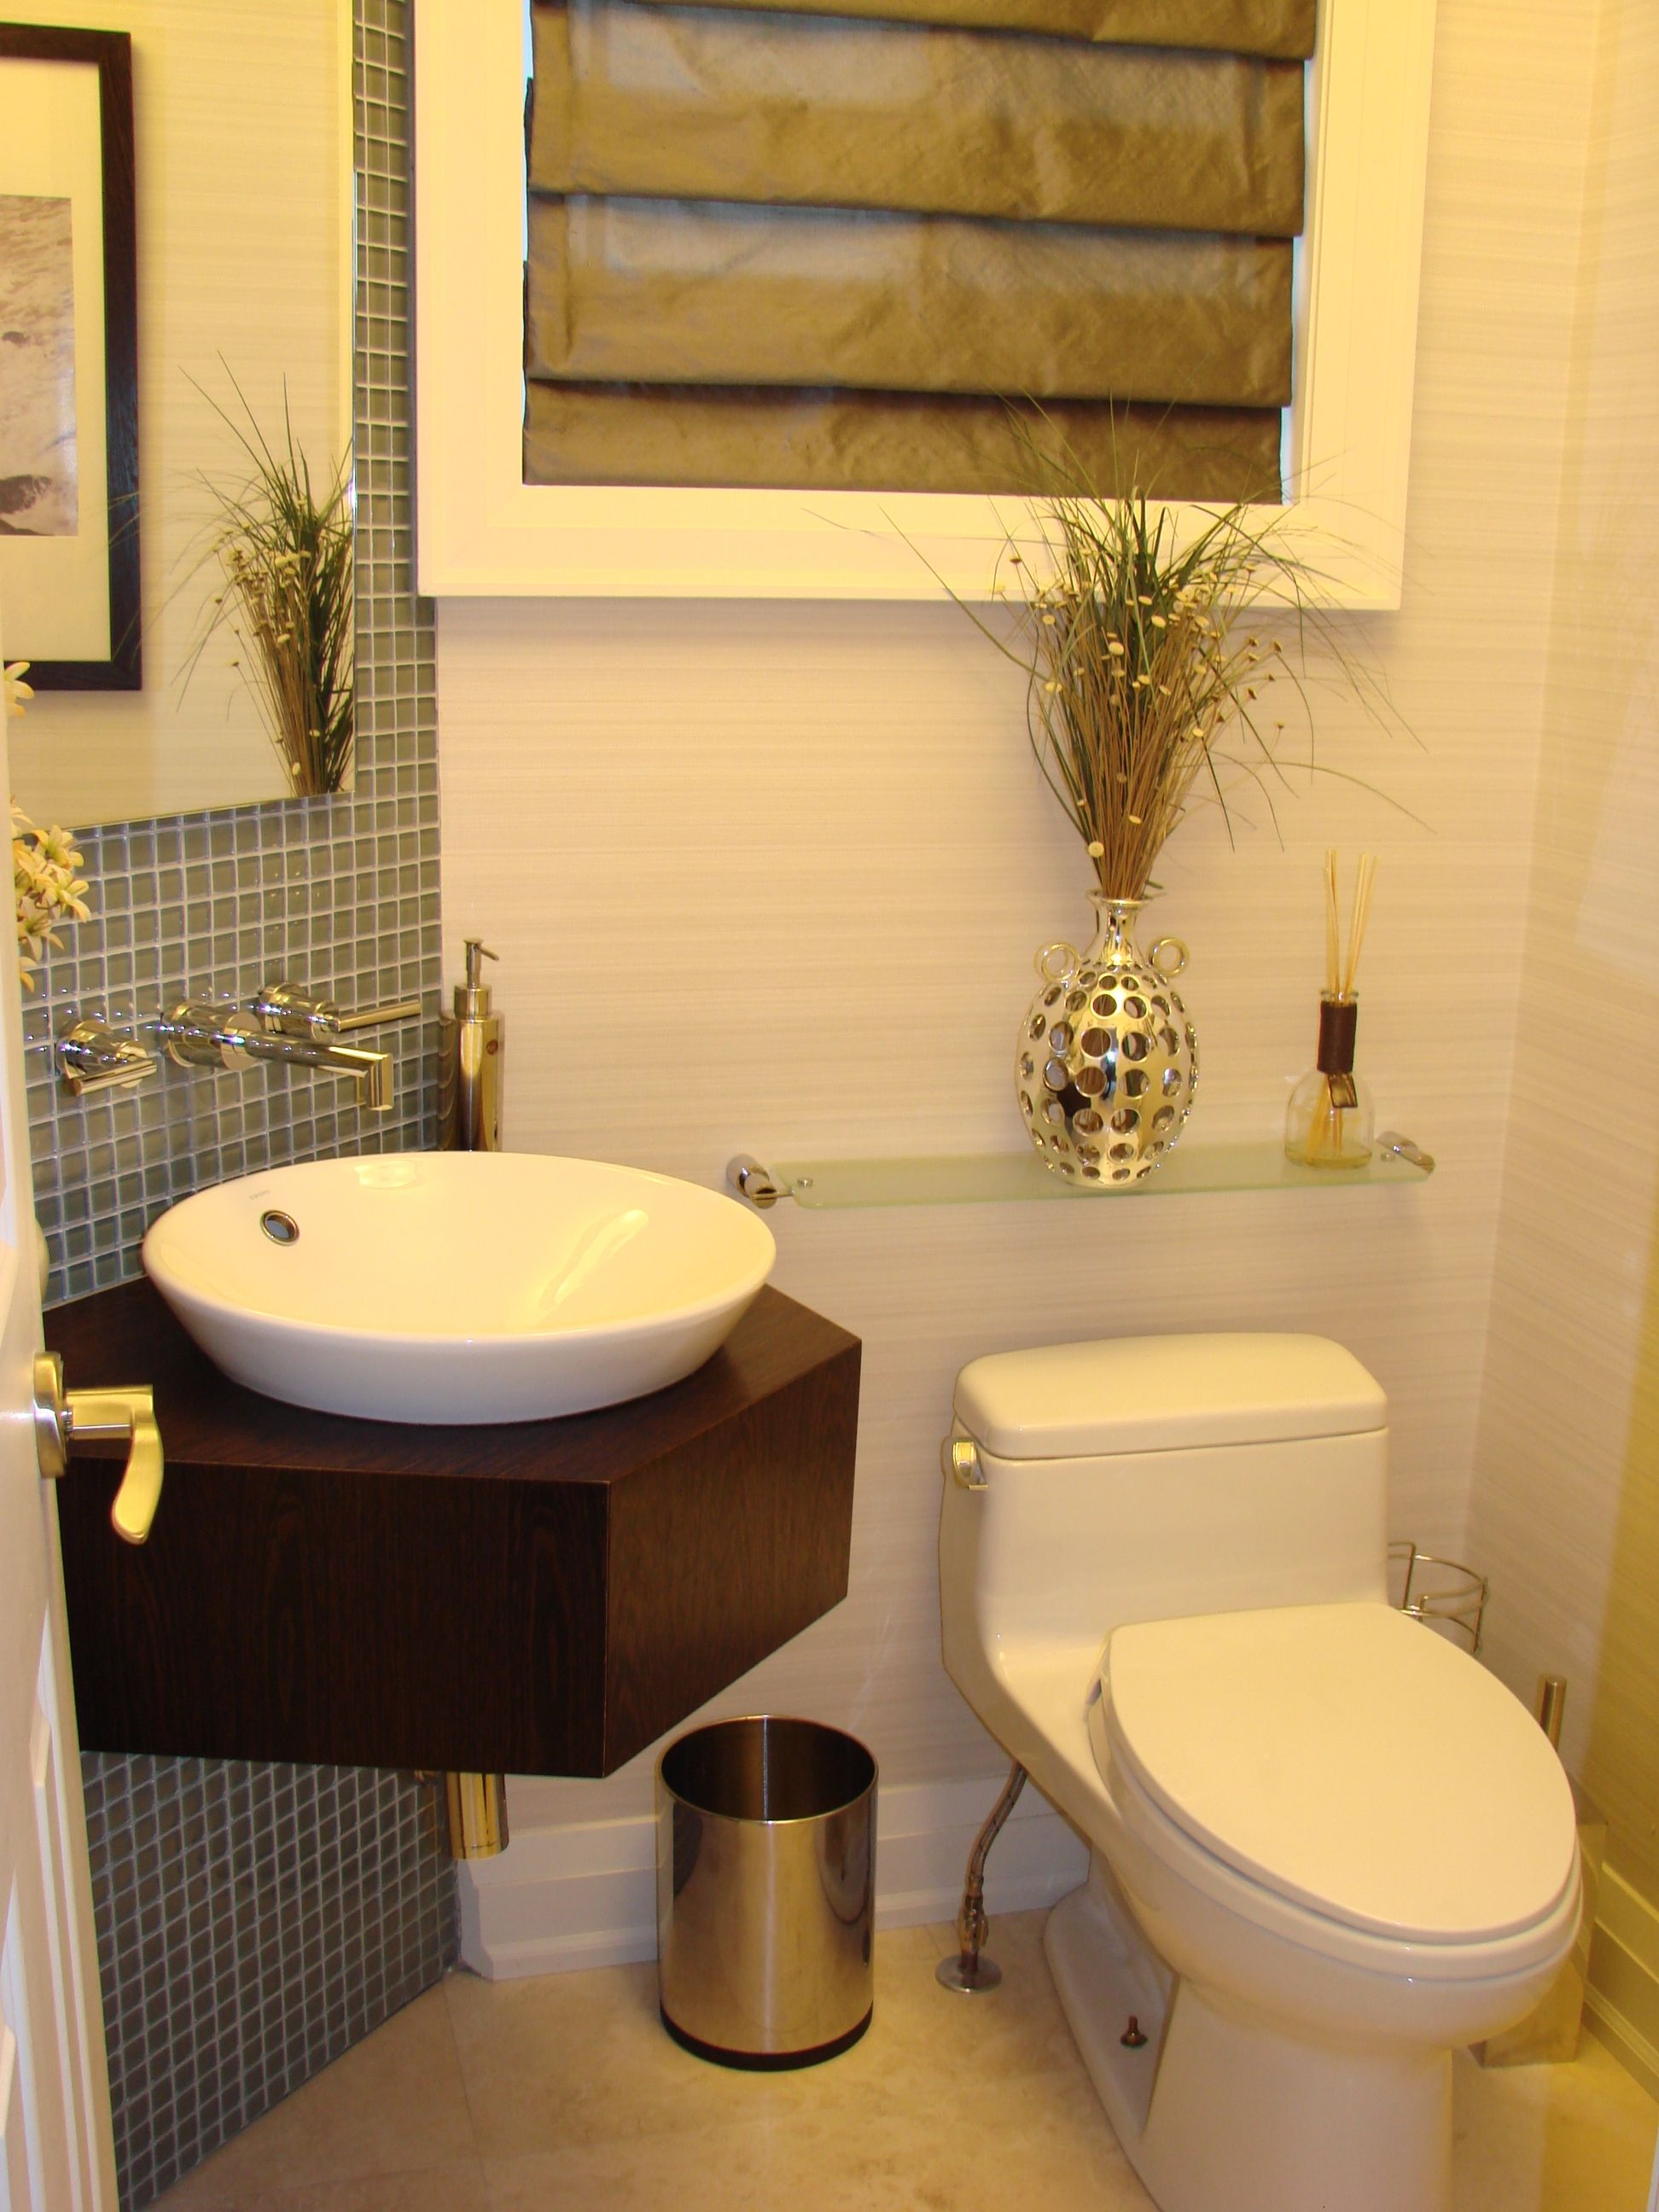 Get Information On Getting Into Home Improvements  To View Adorable Small Beautiful Bathrooms Design Inspiration